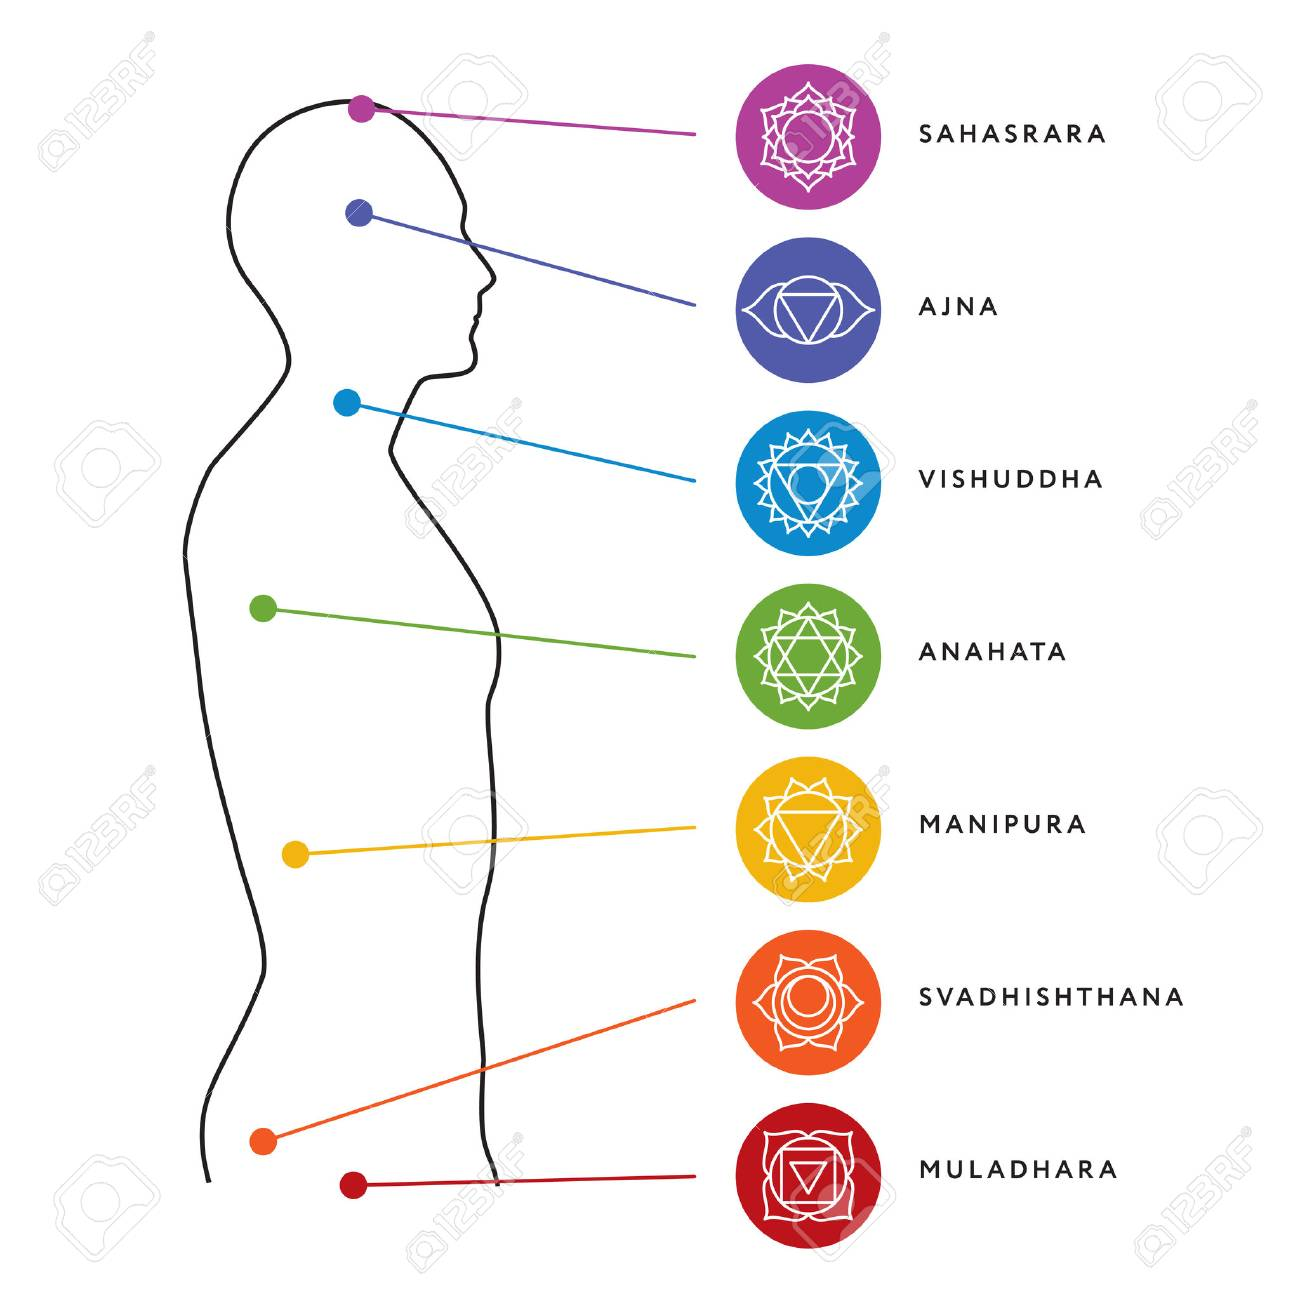 hight resolution of chakra system of human body chart seven chakra symbols location chakra system diagram of